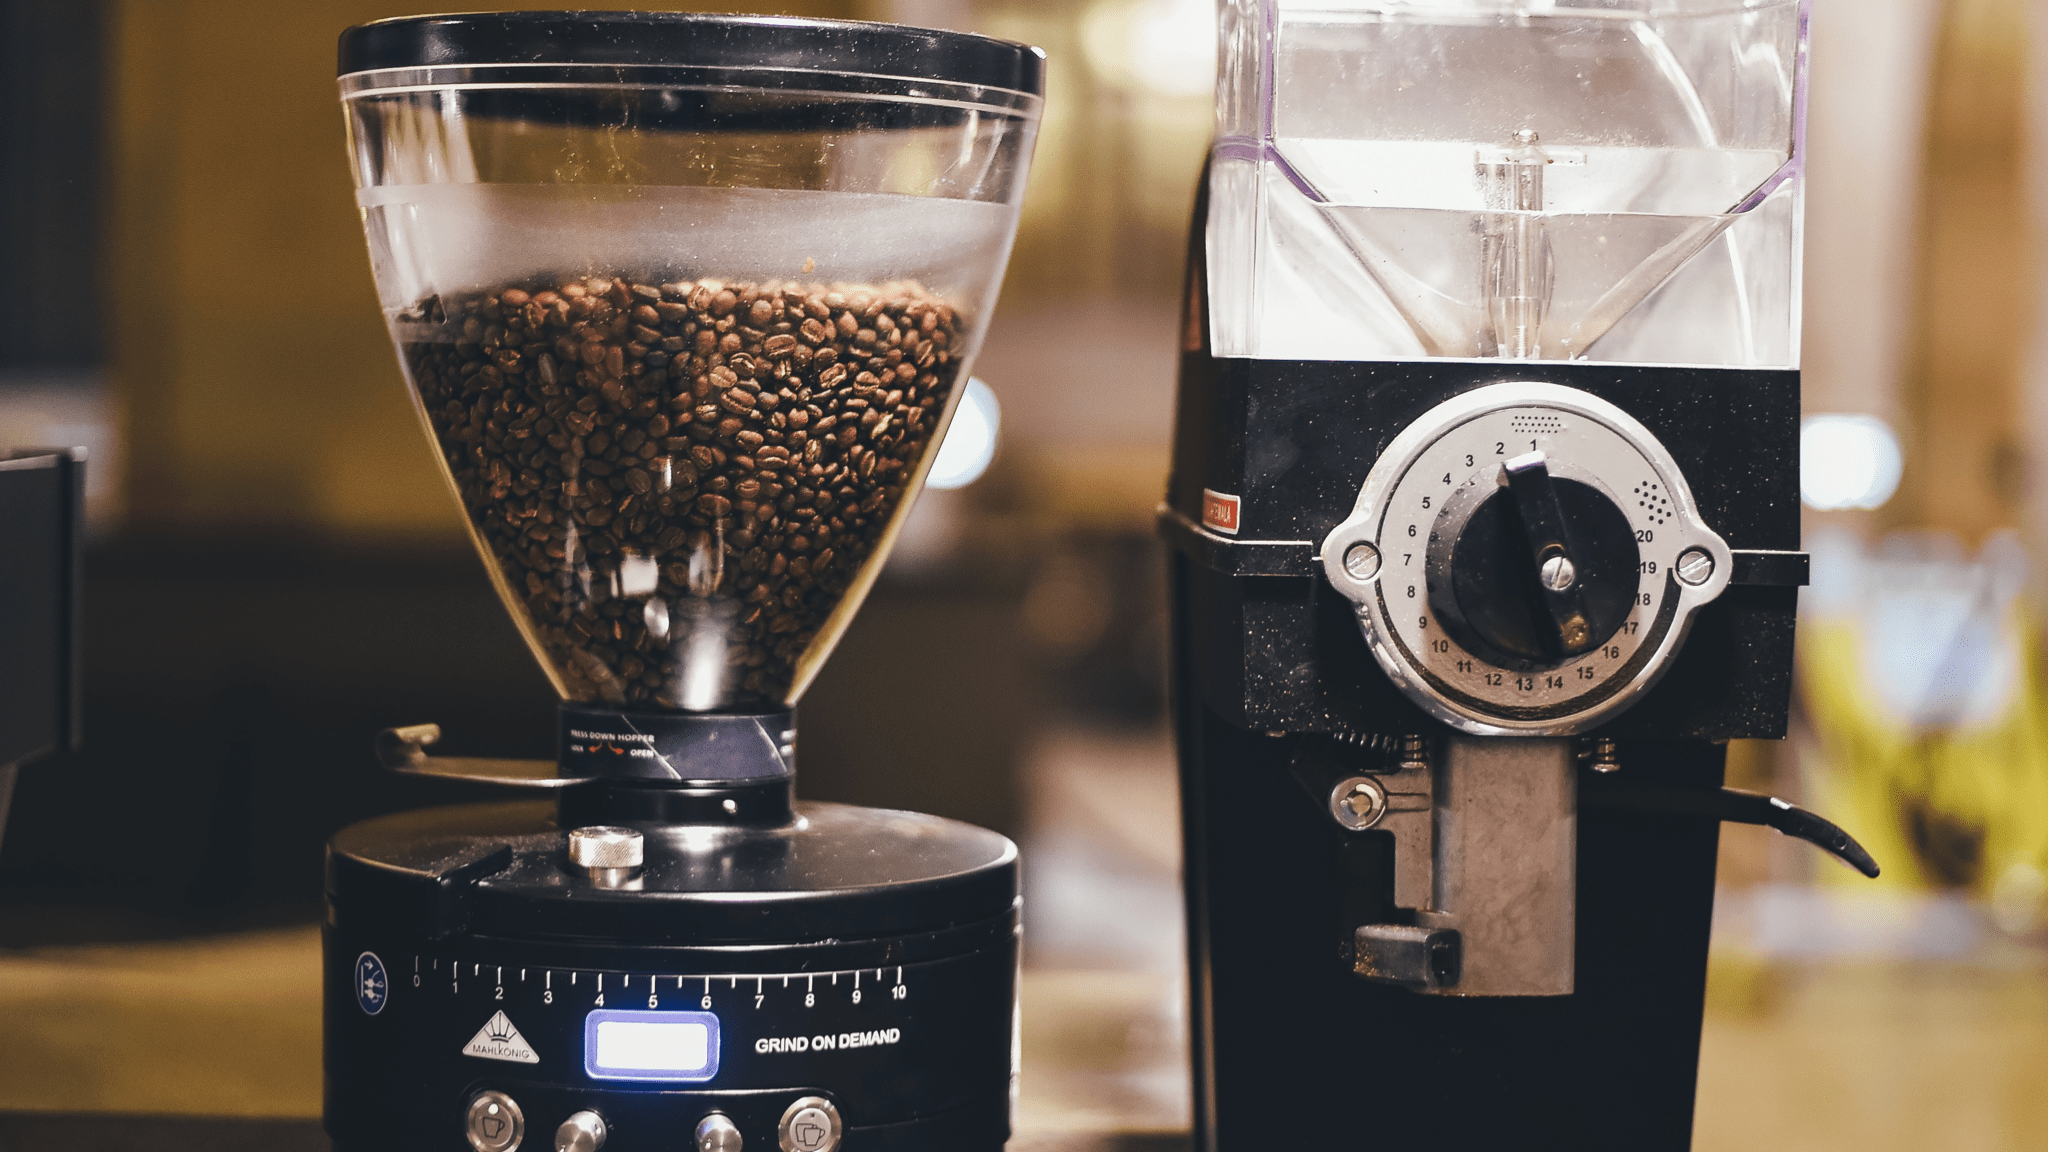 Should You Own A Coffee Grinder?